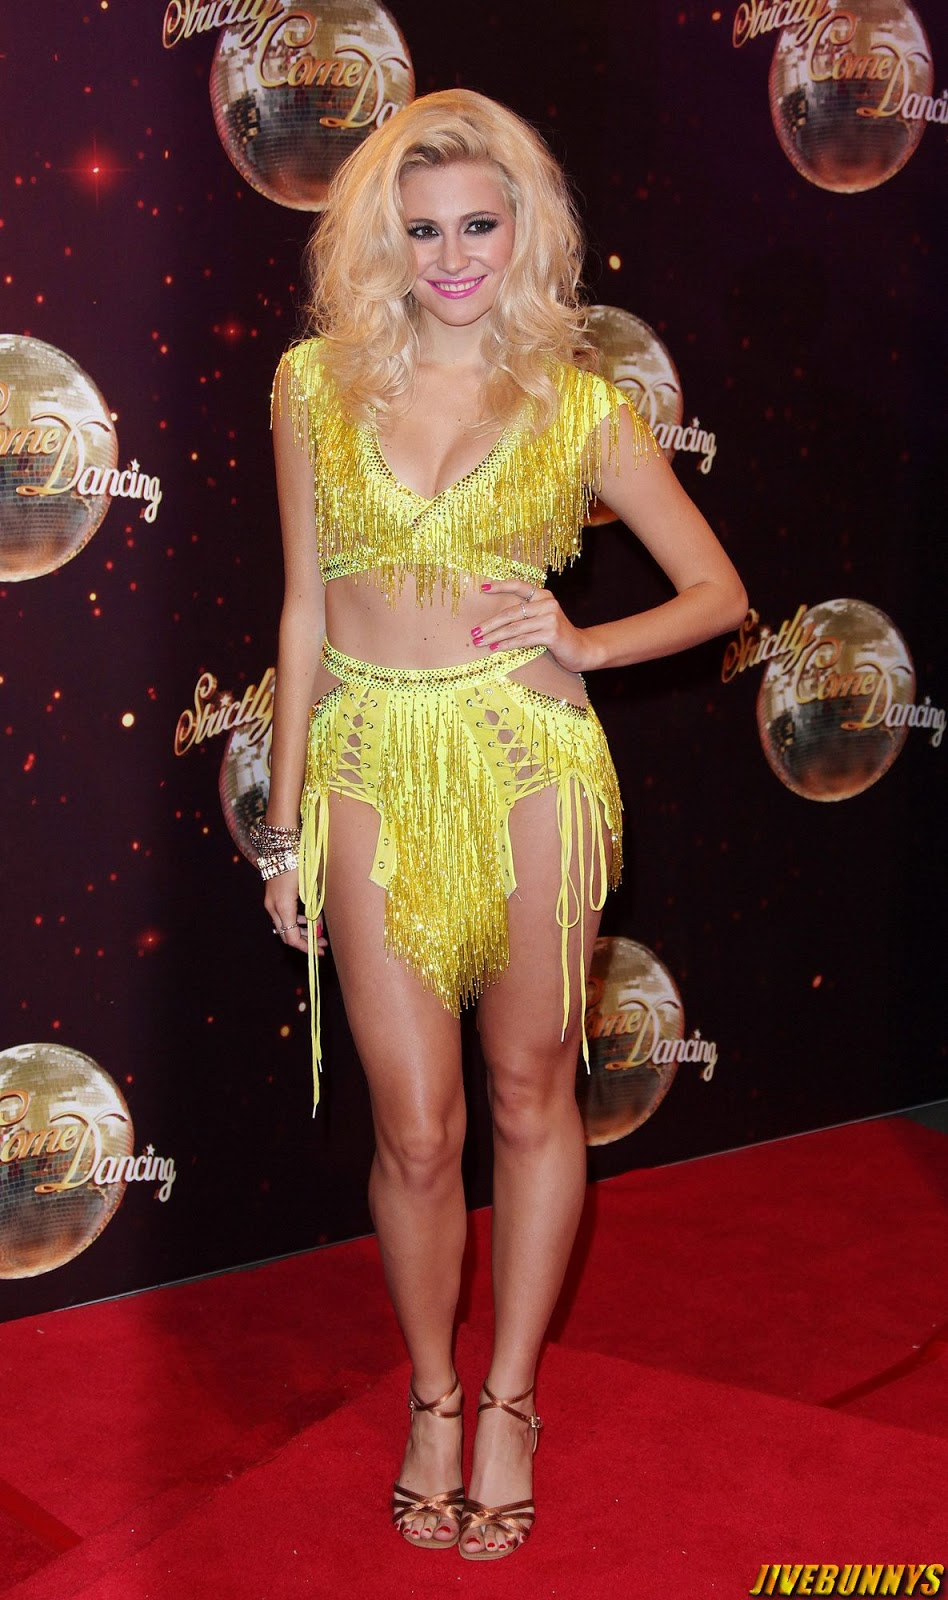 Pixie Lott at the Strictly Come Dancing UK Launch 2014 in London 9/2/14